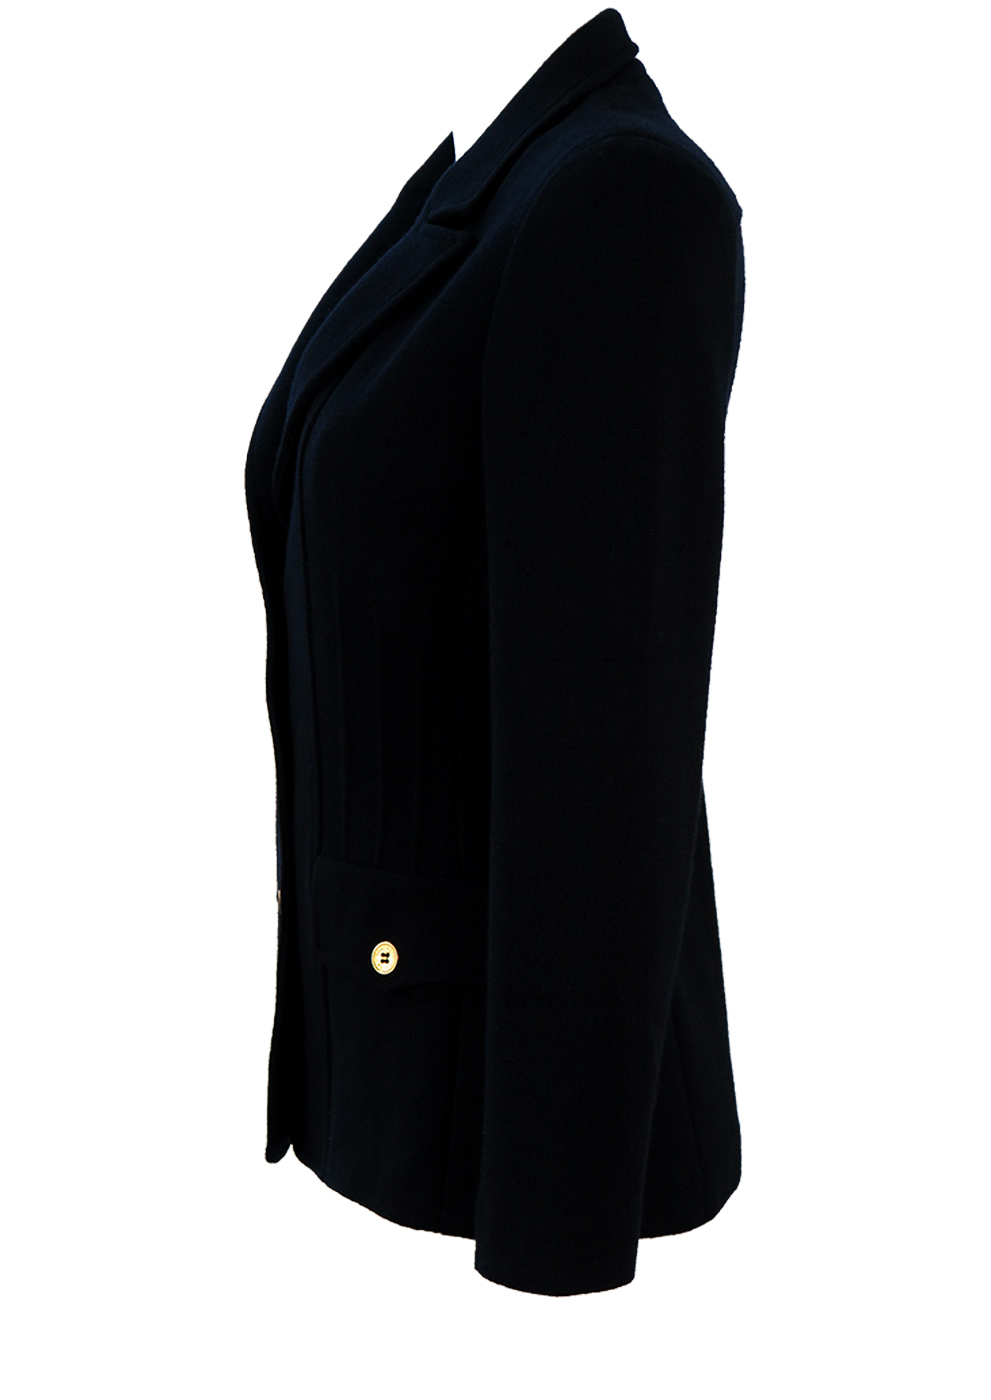 33e5140bdc Luisa Spagnoli Pure Wool Navy Blue Jersey Blazer with Gold Buttons - S.  Touch to zoom